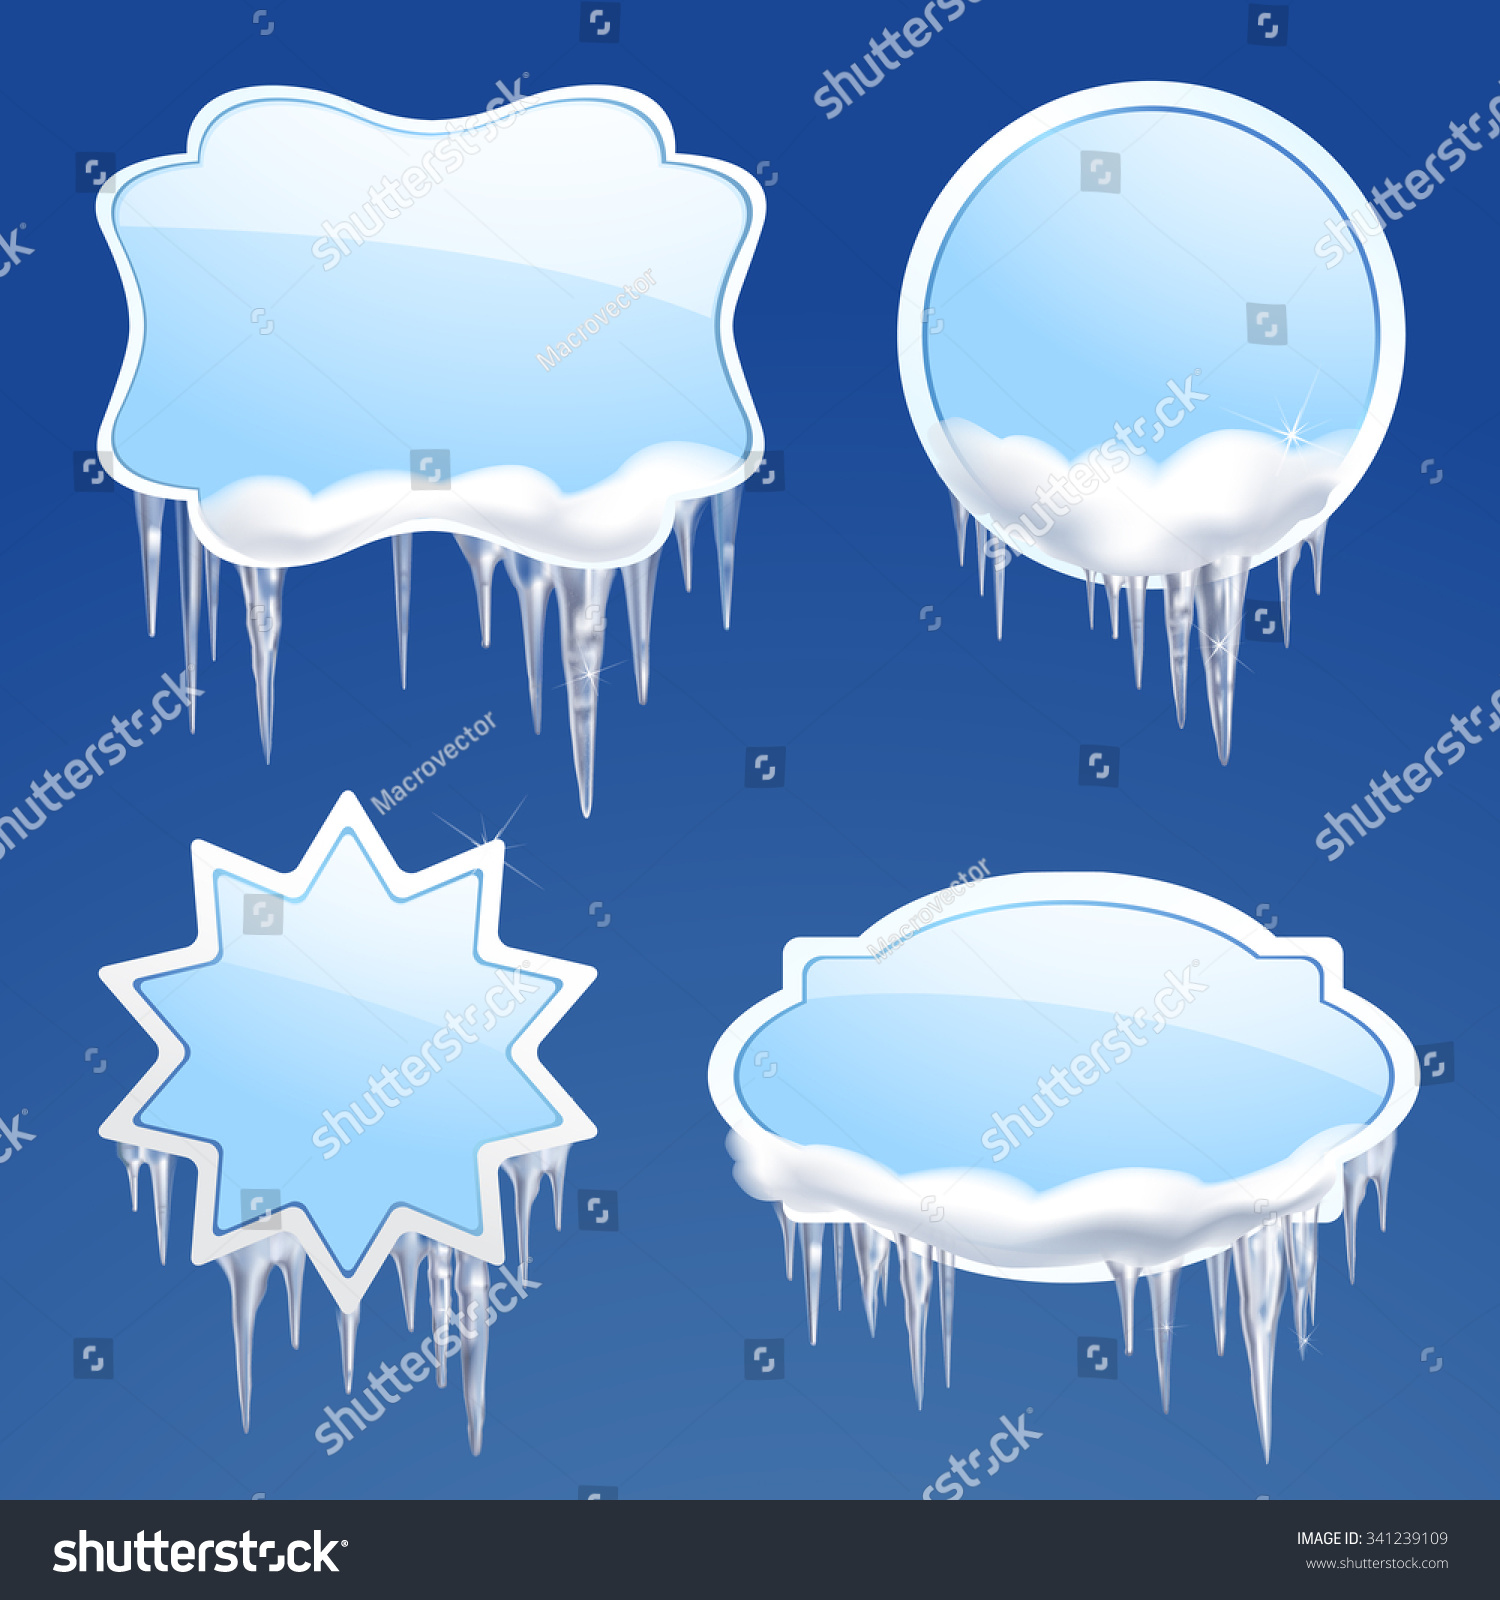 icicle illustrations images reverse search